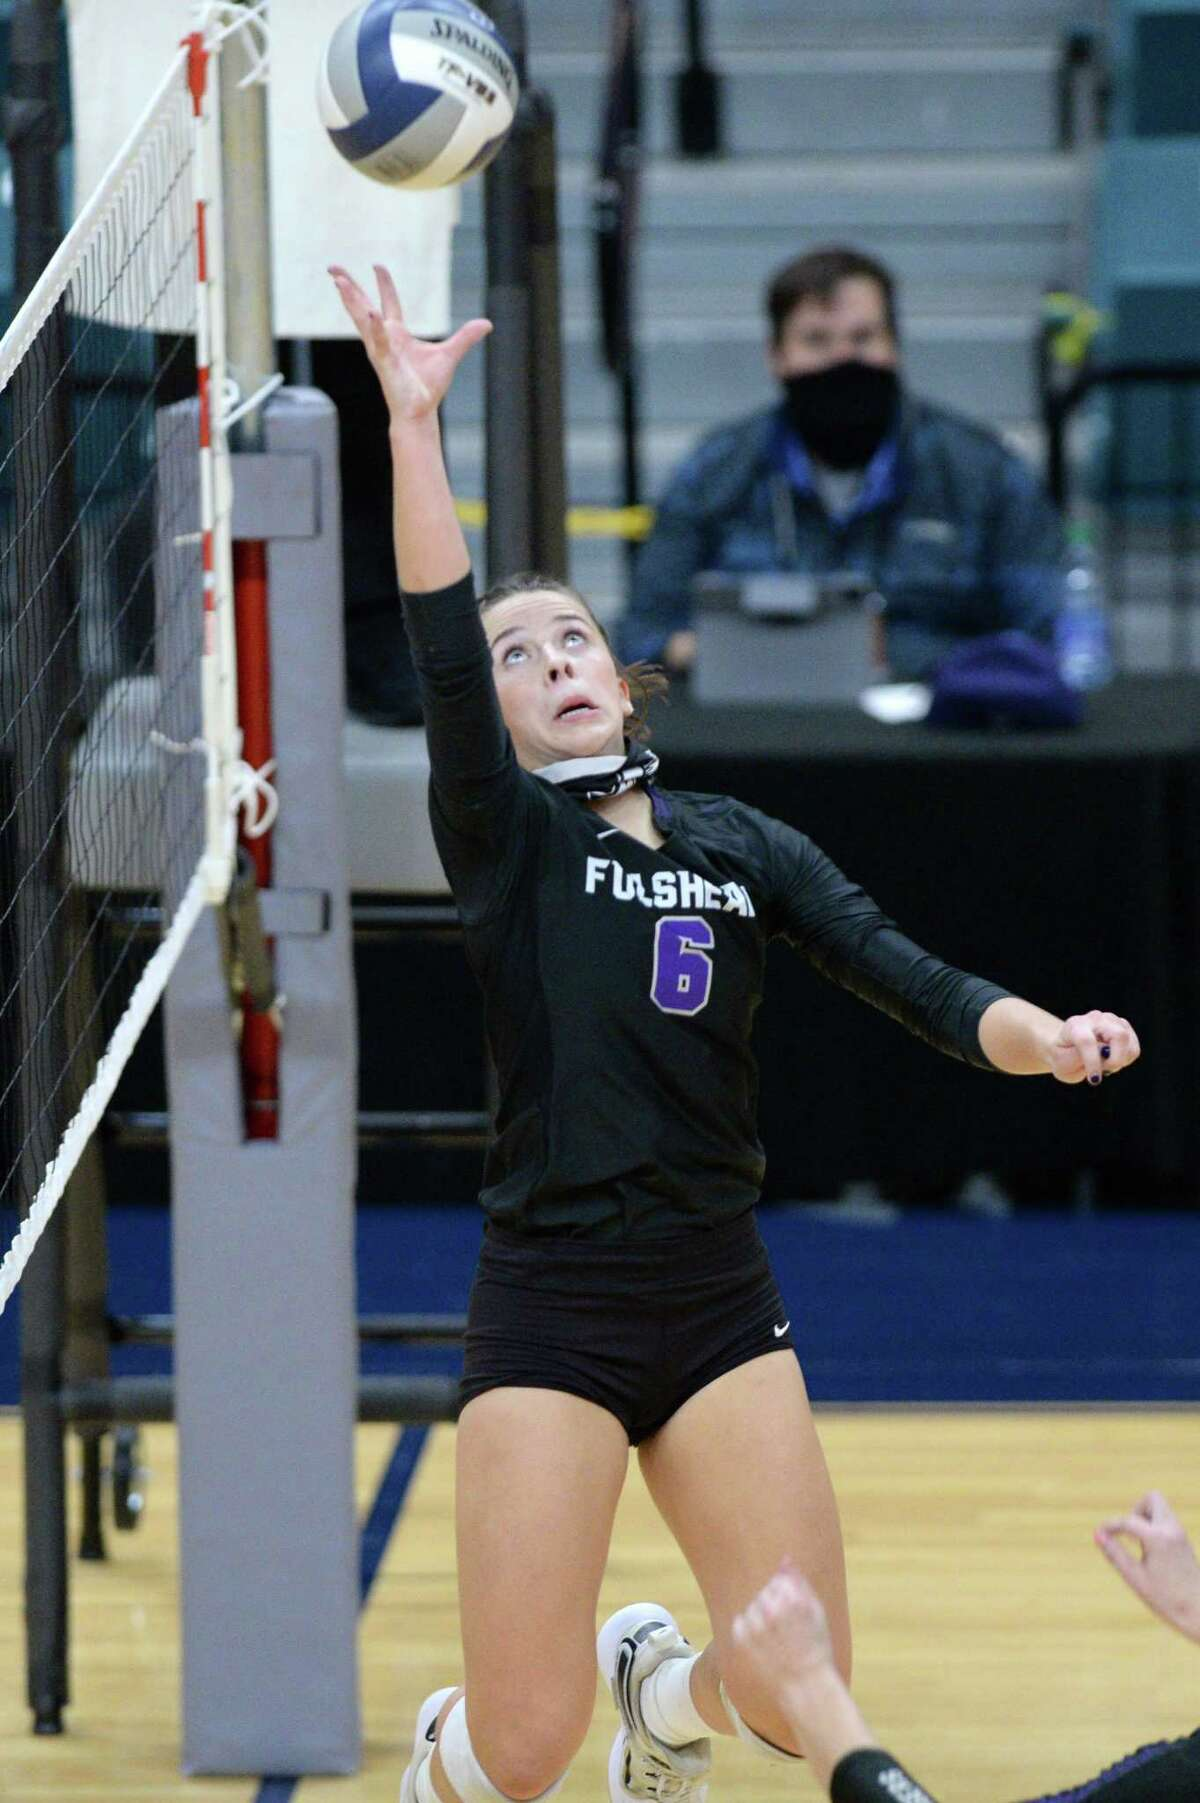 Ava Underwood (6) of Fulshear tips a ball during the second set of the Class 5A state semifinal volleyball match between the Fulshear Chargers and the Dripping Springs Tigers on Tuesday, December 8, 2020 at Leonard Merrell Center, Katy, TX.